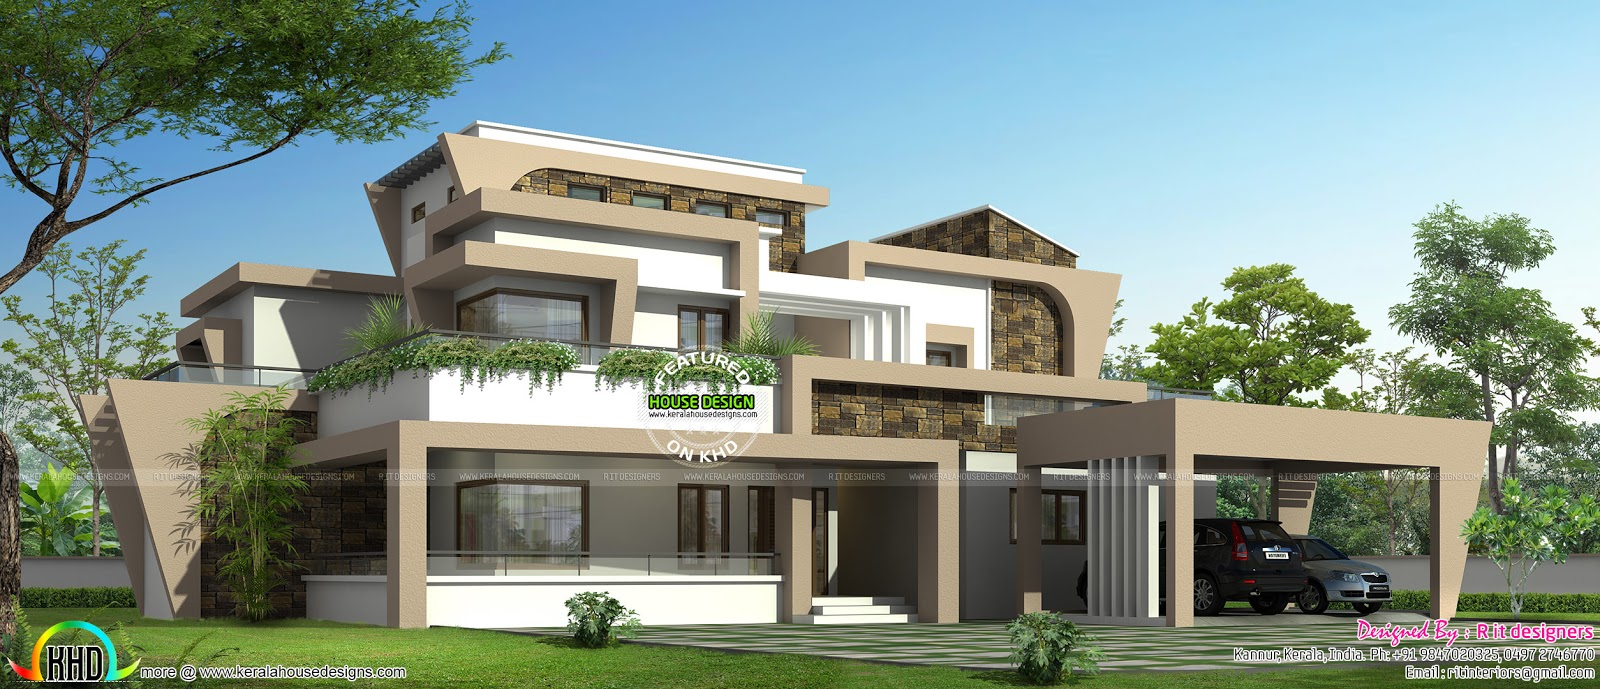 Unique modern home design in kerala kerala home design for Cool modern house plans